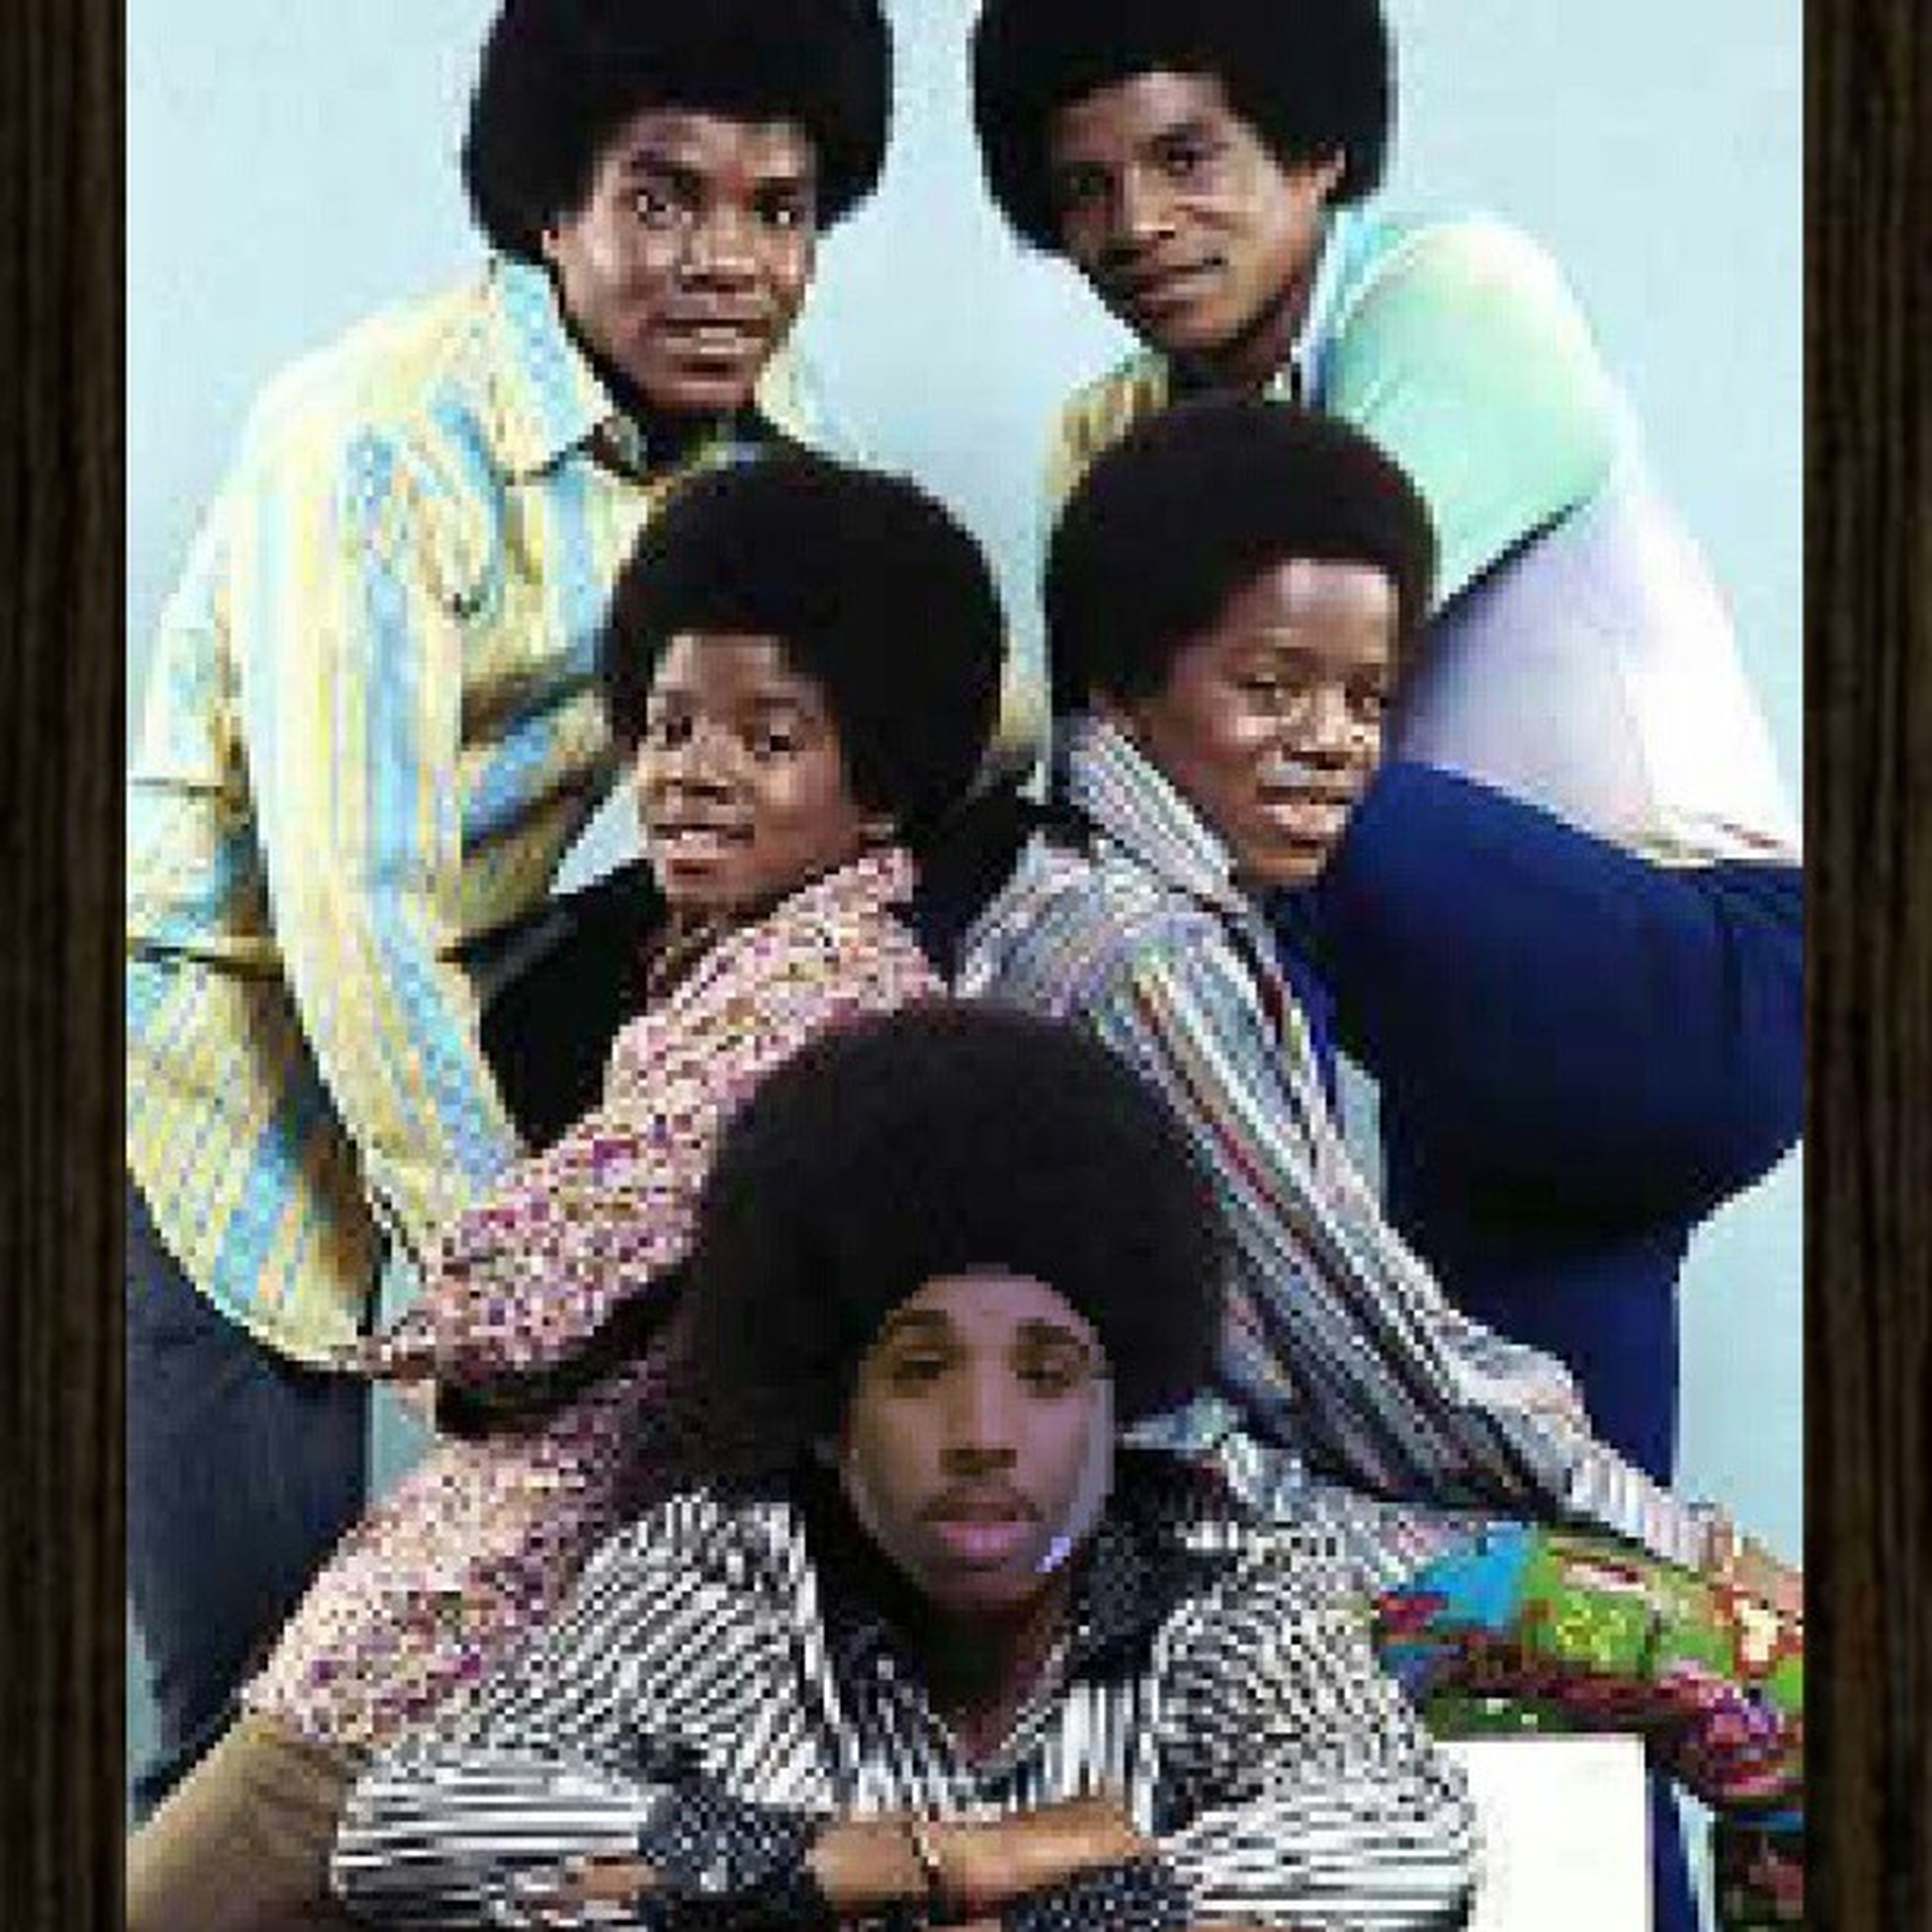 Sibling day MeAndTheBros Tito Michael Jackson 5 Jackson5 Abc WeLive WhenWeWereBrown Lol lmao